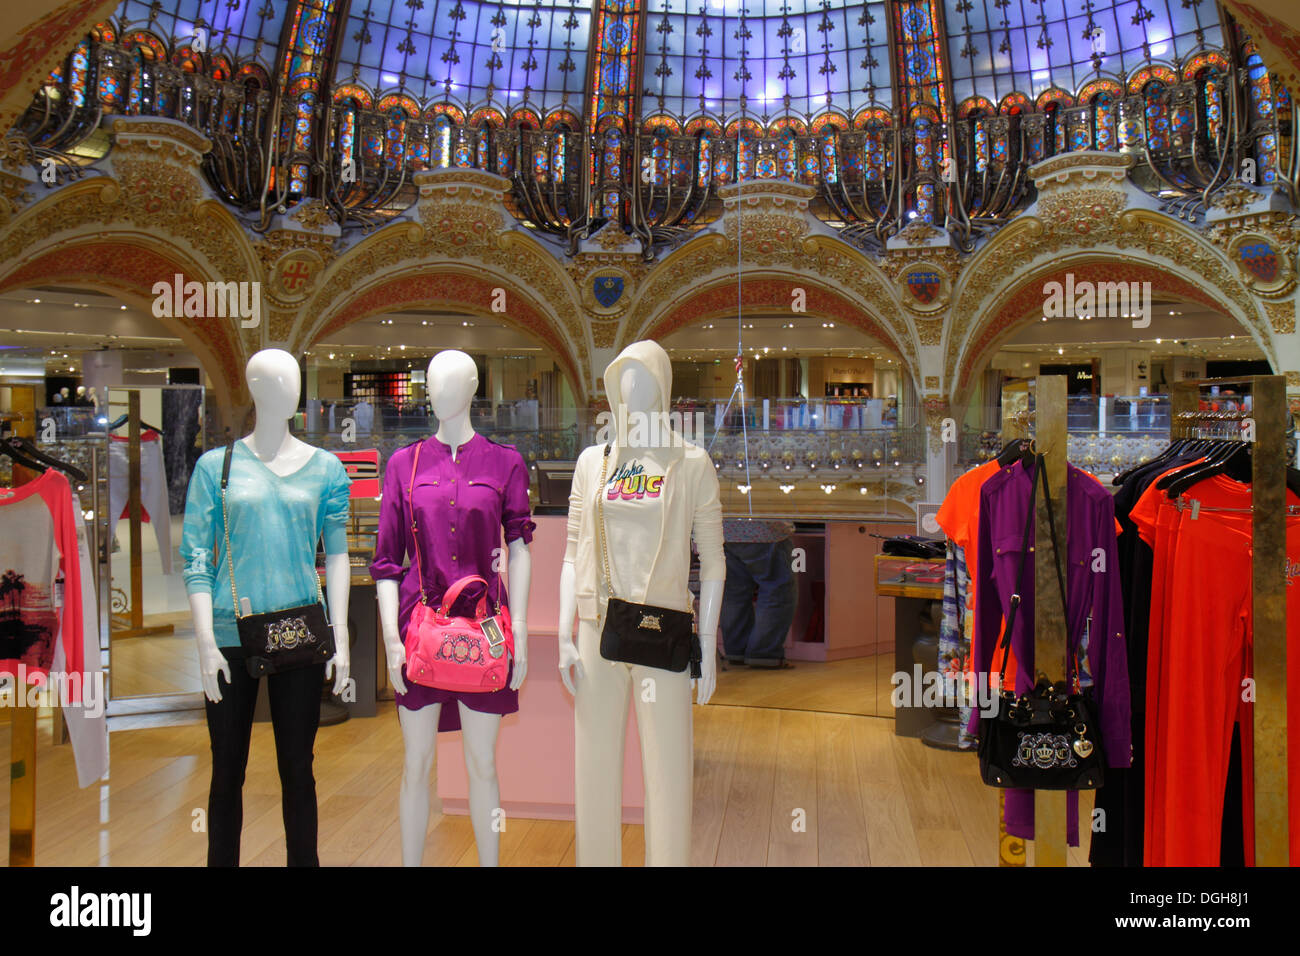 Paris France Europe French 9th arrondissement Boulevard Haussmann Galeries Lafayette department store shopping fashion mannequin - Stock Image